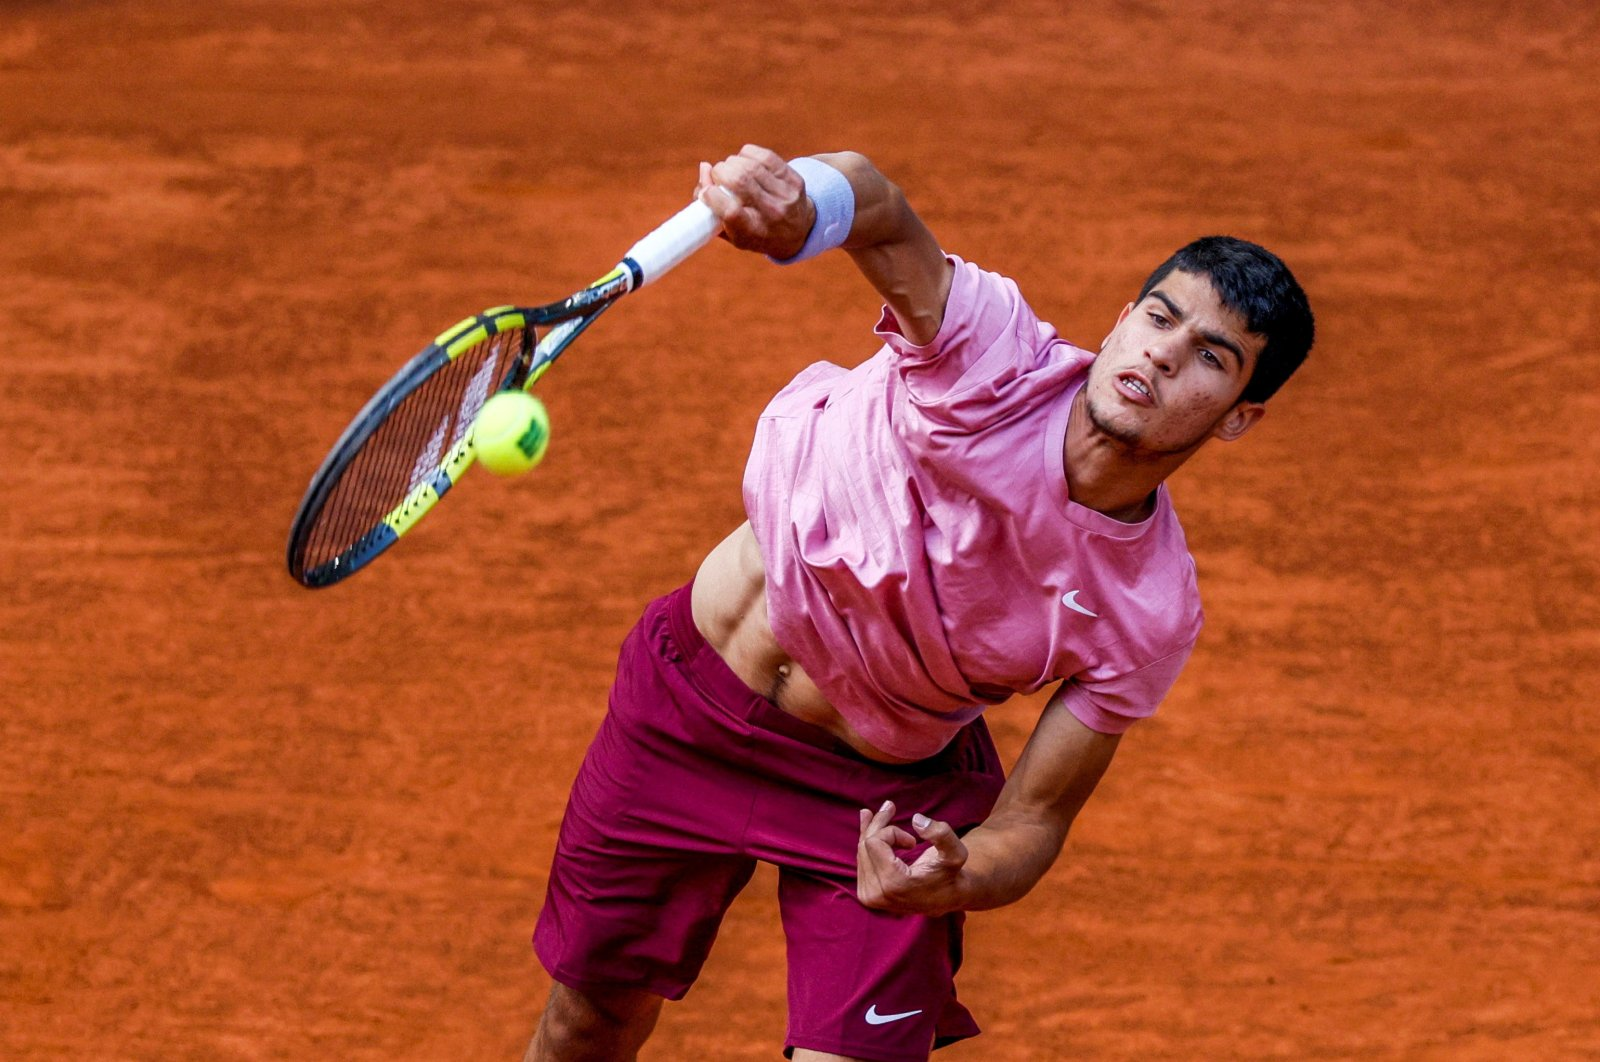 Spain's Carlos Alcaraz in action against France's Adrian Mannarino at the Mutua Madrid Open tennis tournament, Madrid, Spain, May 03, 2021. (EPA Photo)